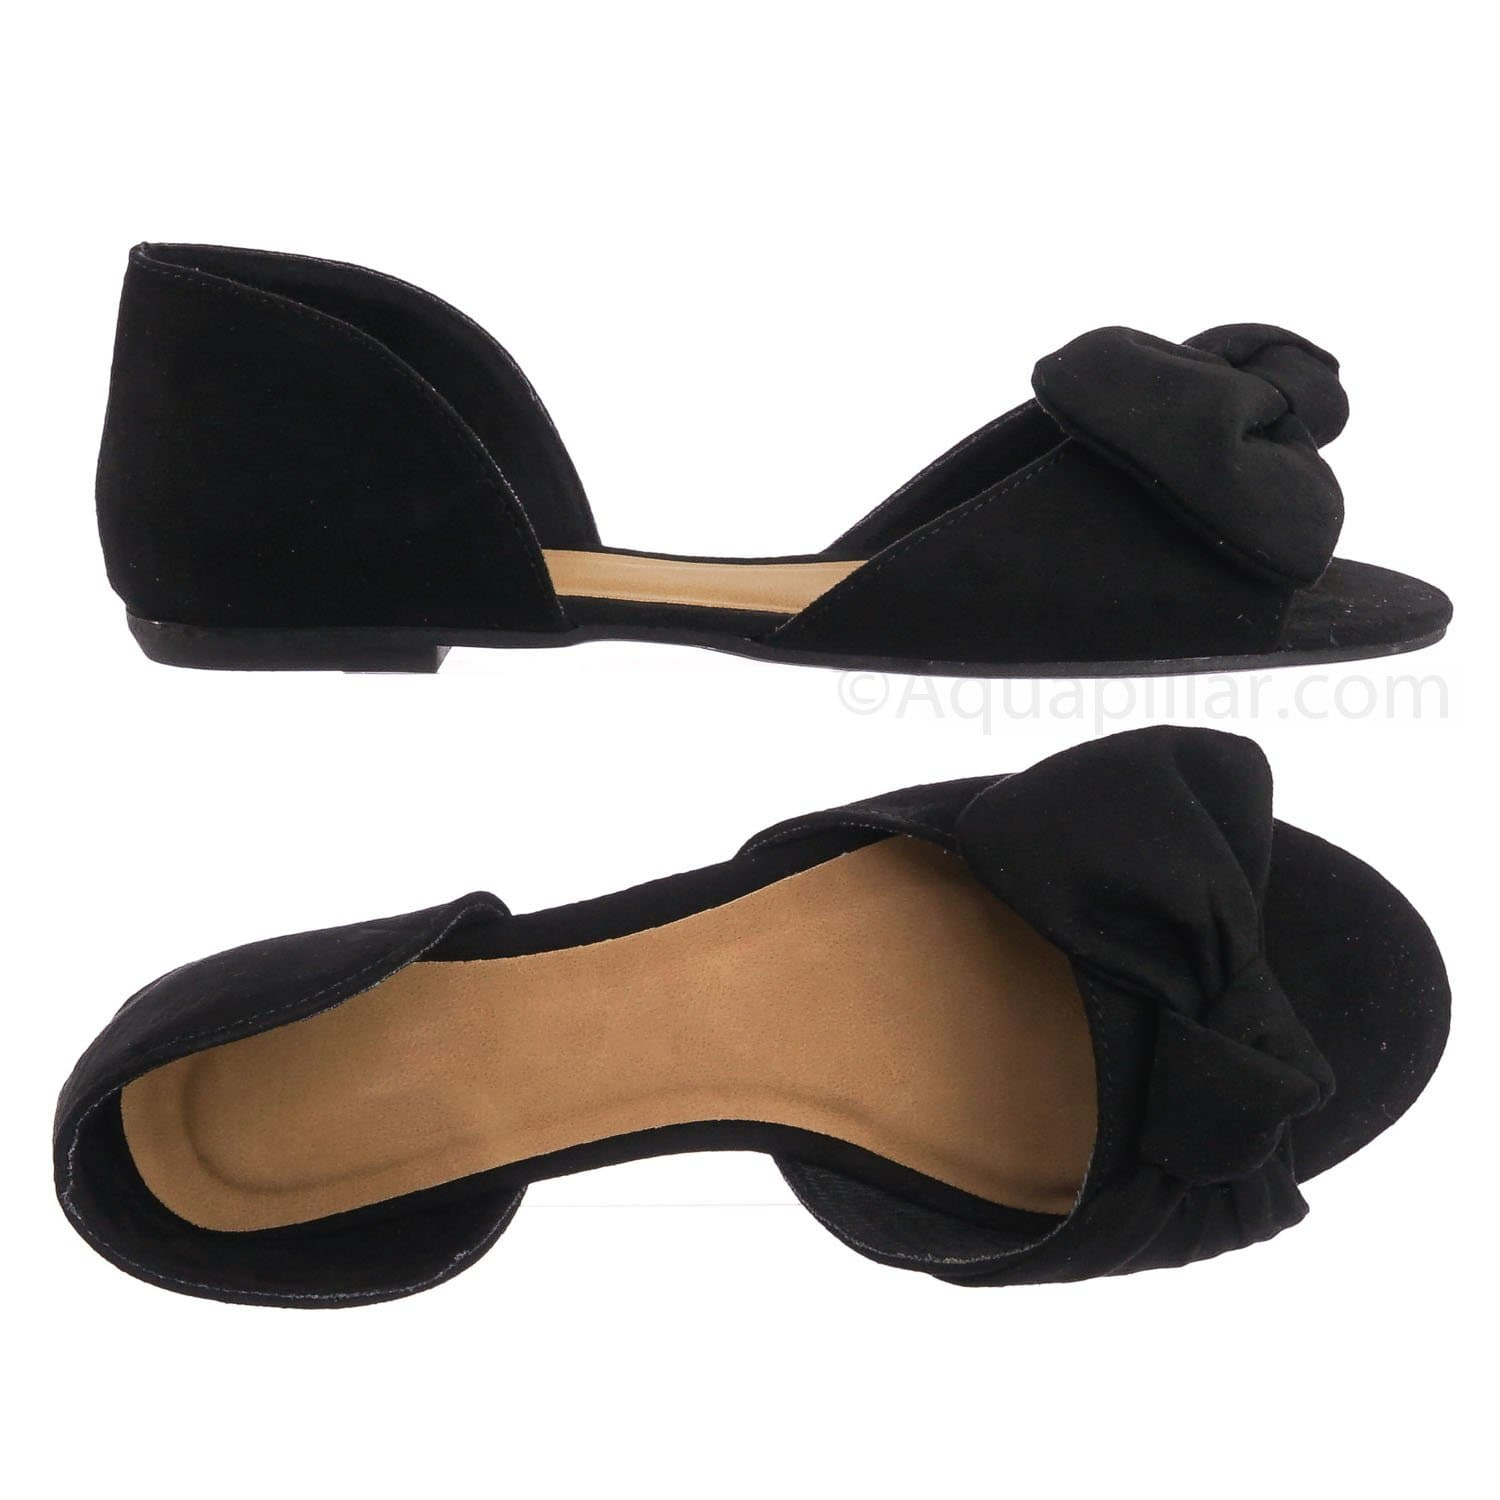 Leona77 BlkFs Bow d'Orsay Peep Toe Flats - Women Slip On Two Piece Sandal